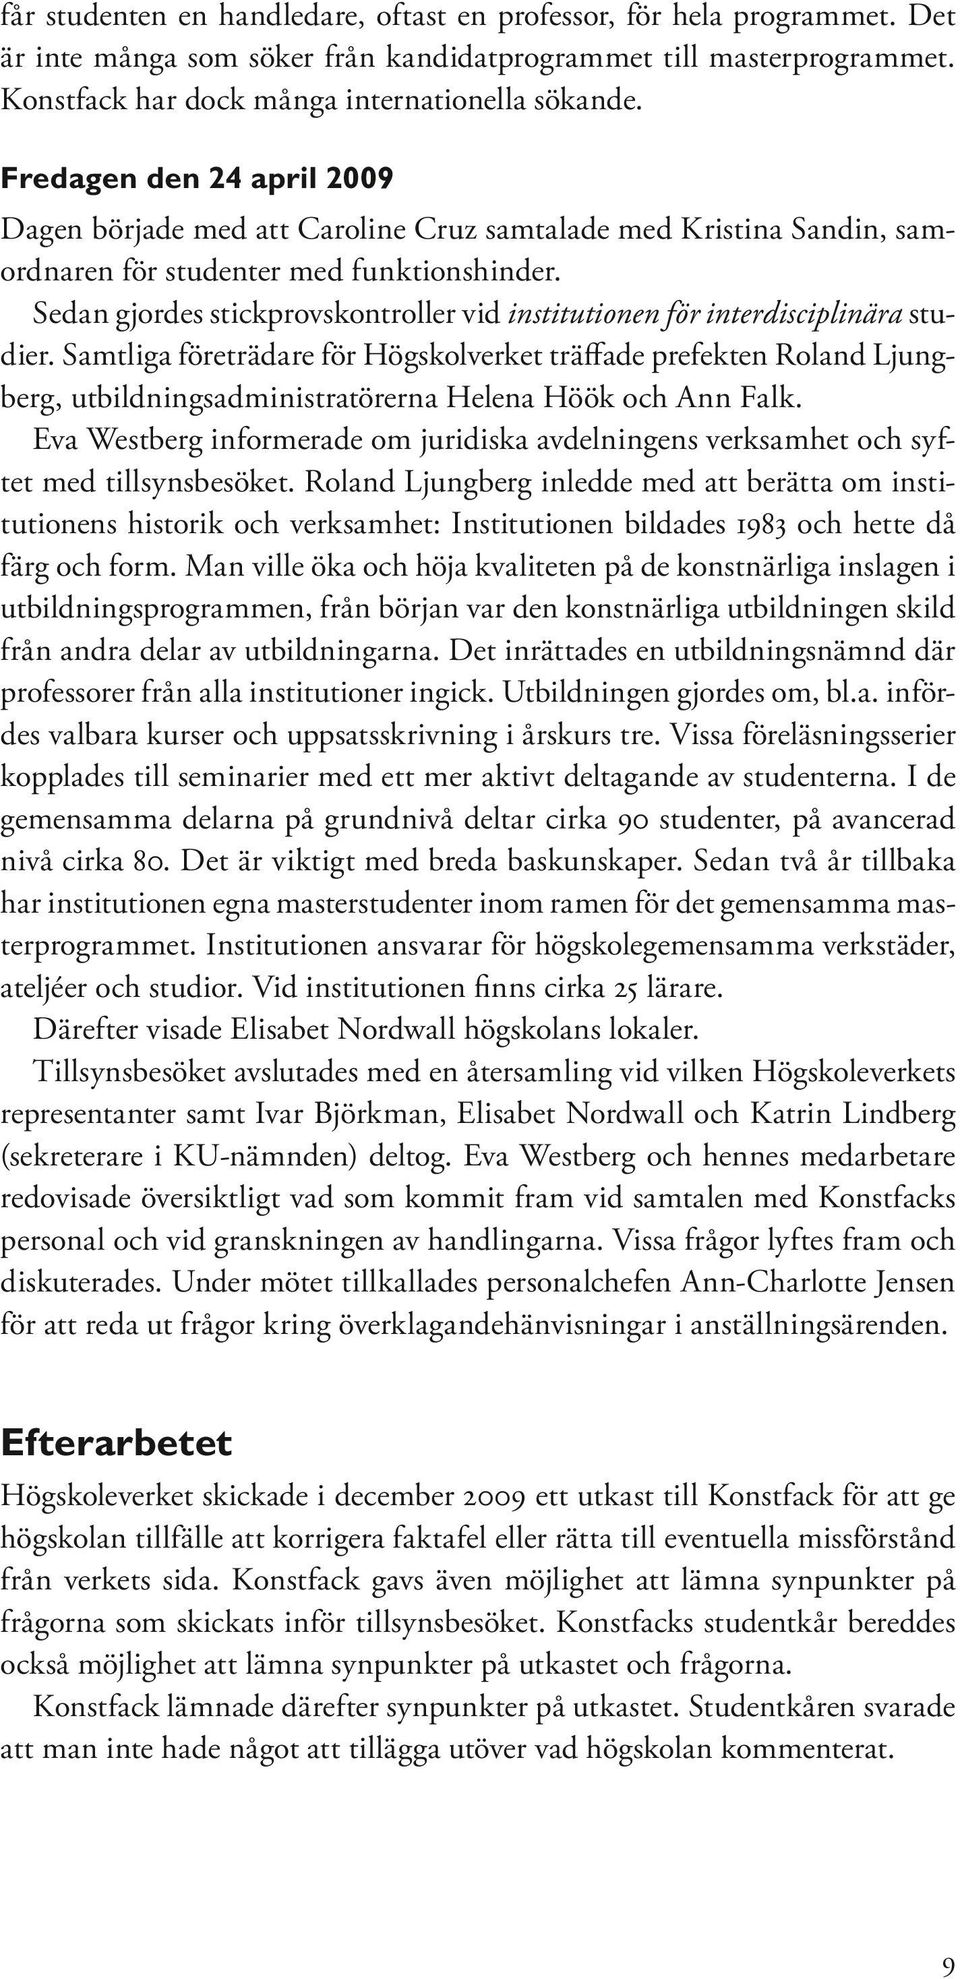 Sedan gjordes stickprovskontroller vid institutionen för interdisciplinära studier.